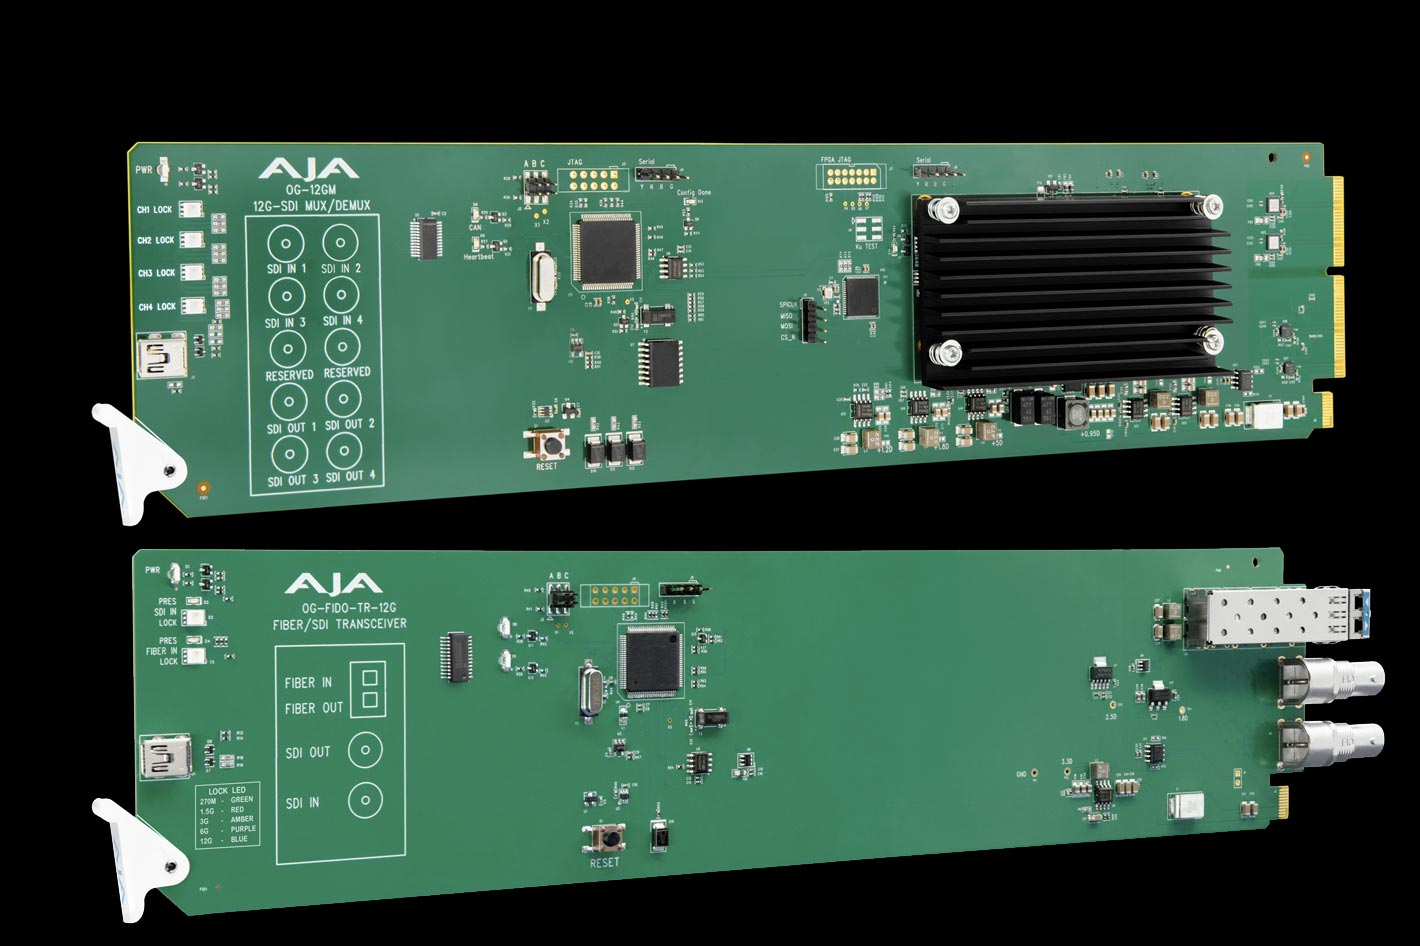 AJA releases two new 12G-SDI openGear solutions